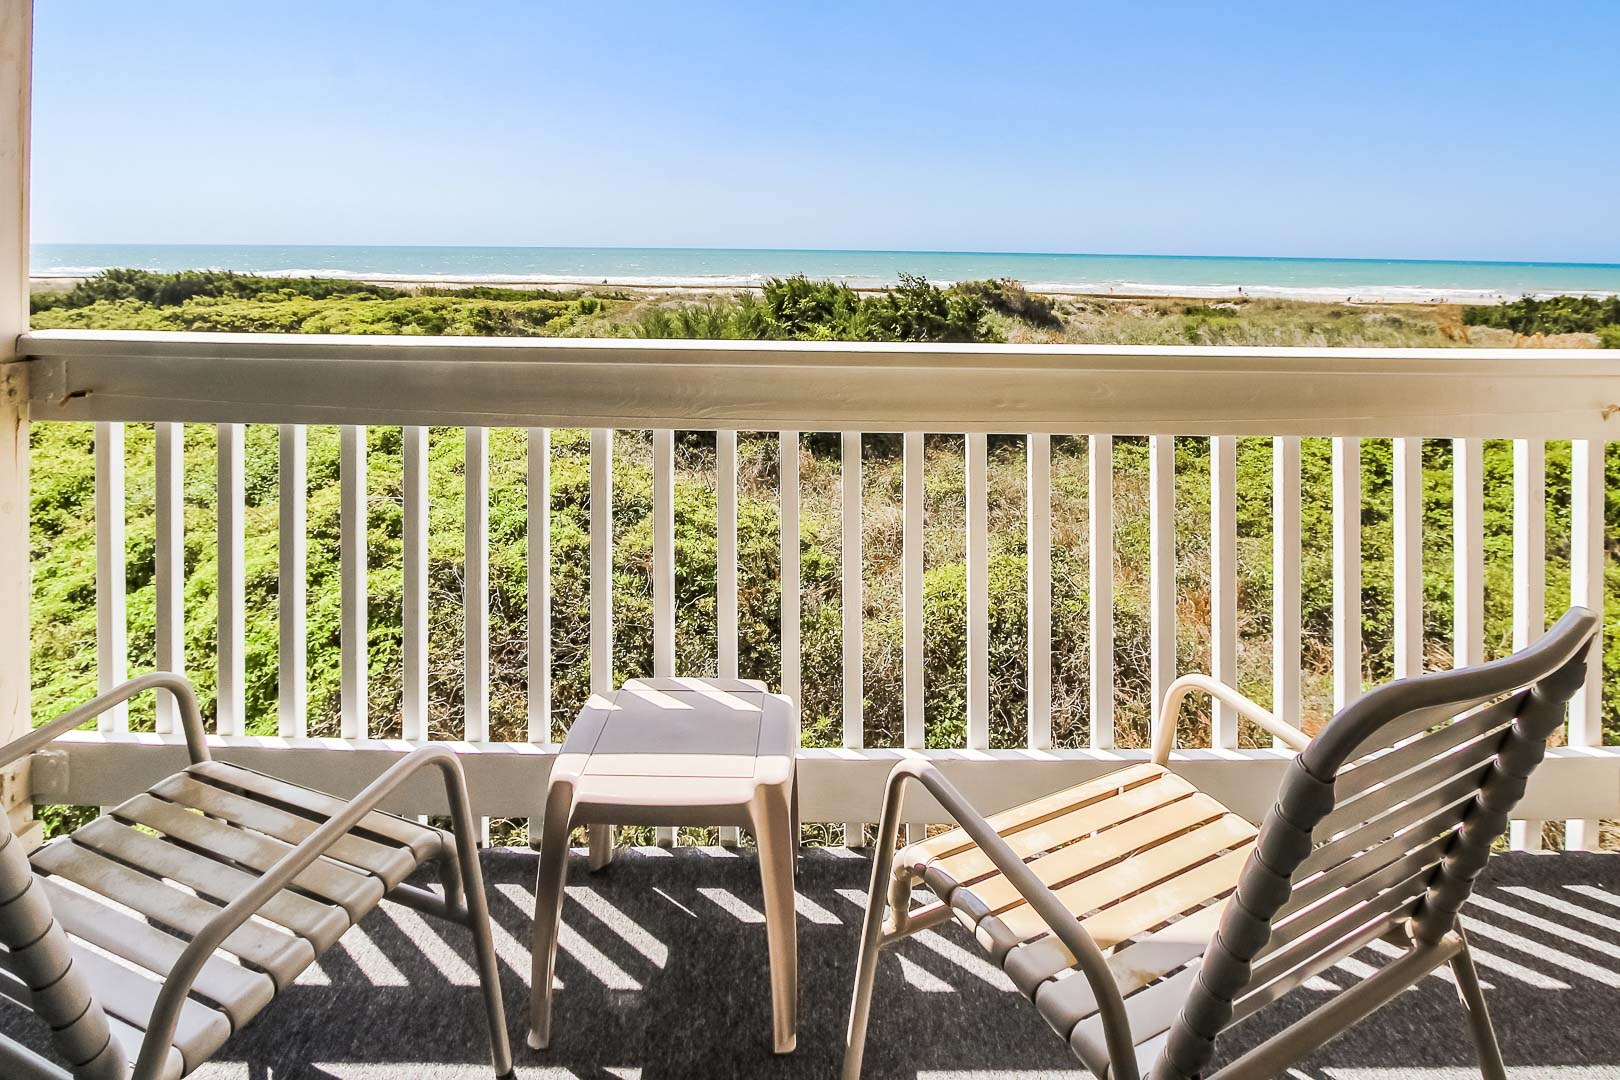 A relaxing balcony view at VRI's A Place at the Beach III in North Carolina